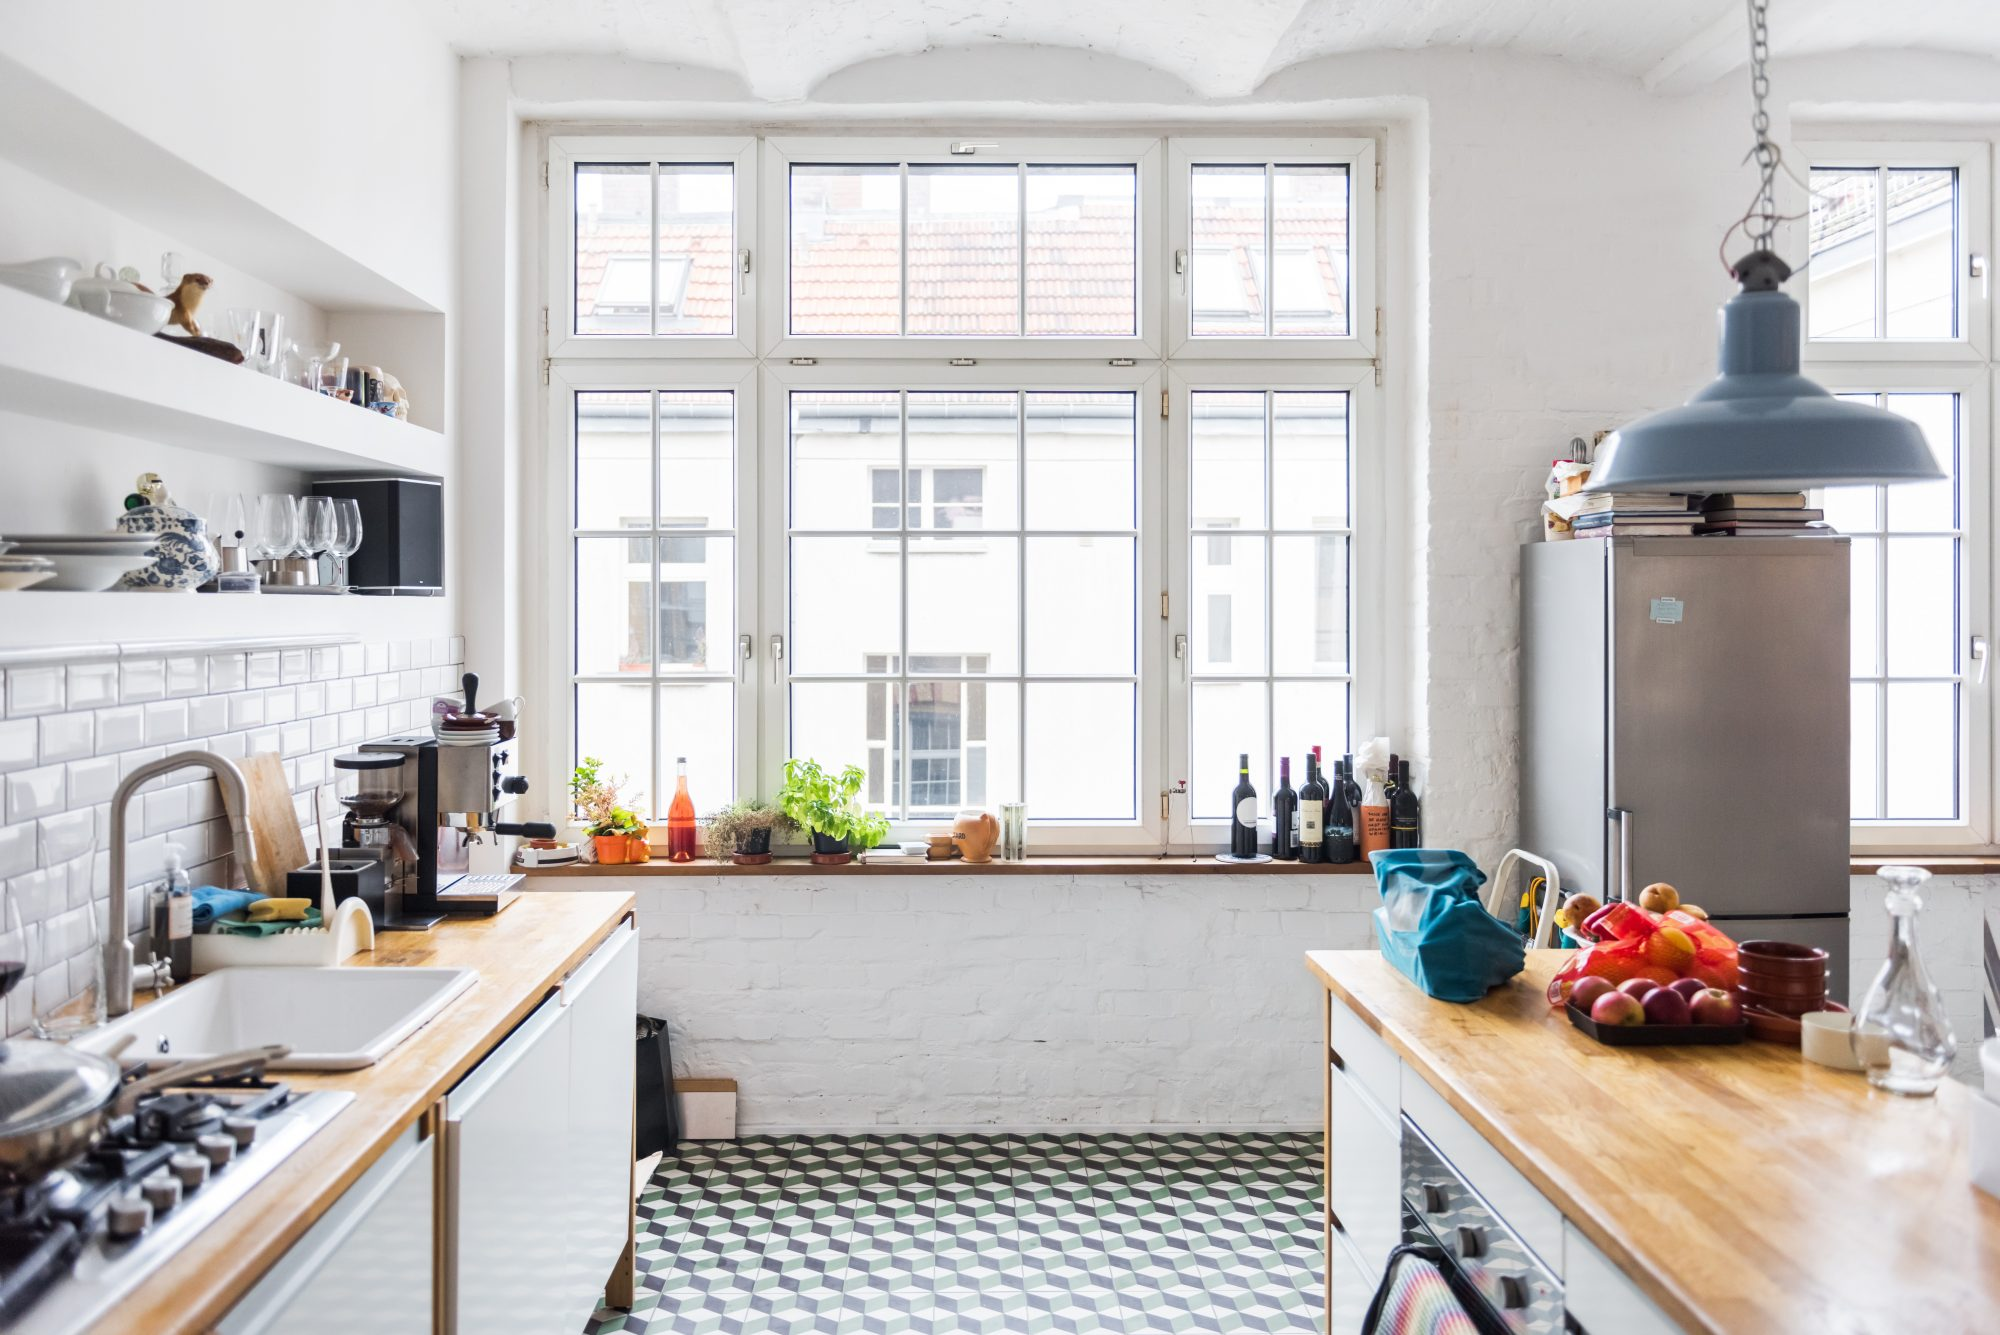 Before-and-After Kitchen Makeovers: Renovation Ideas You'll Love